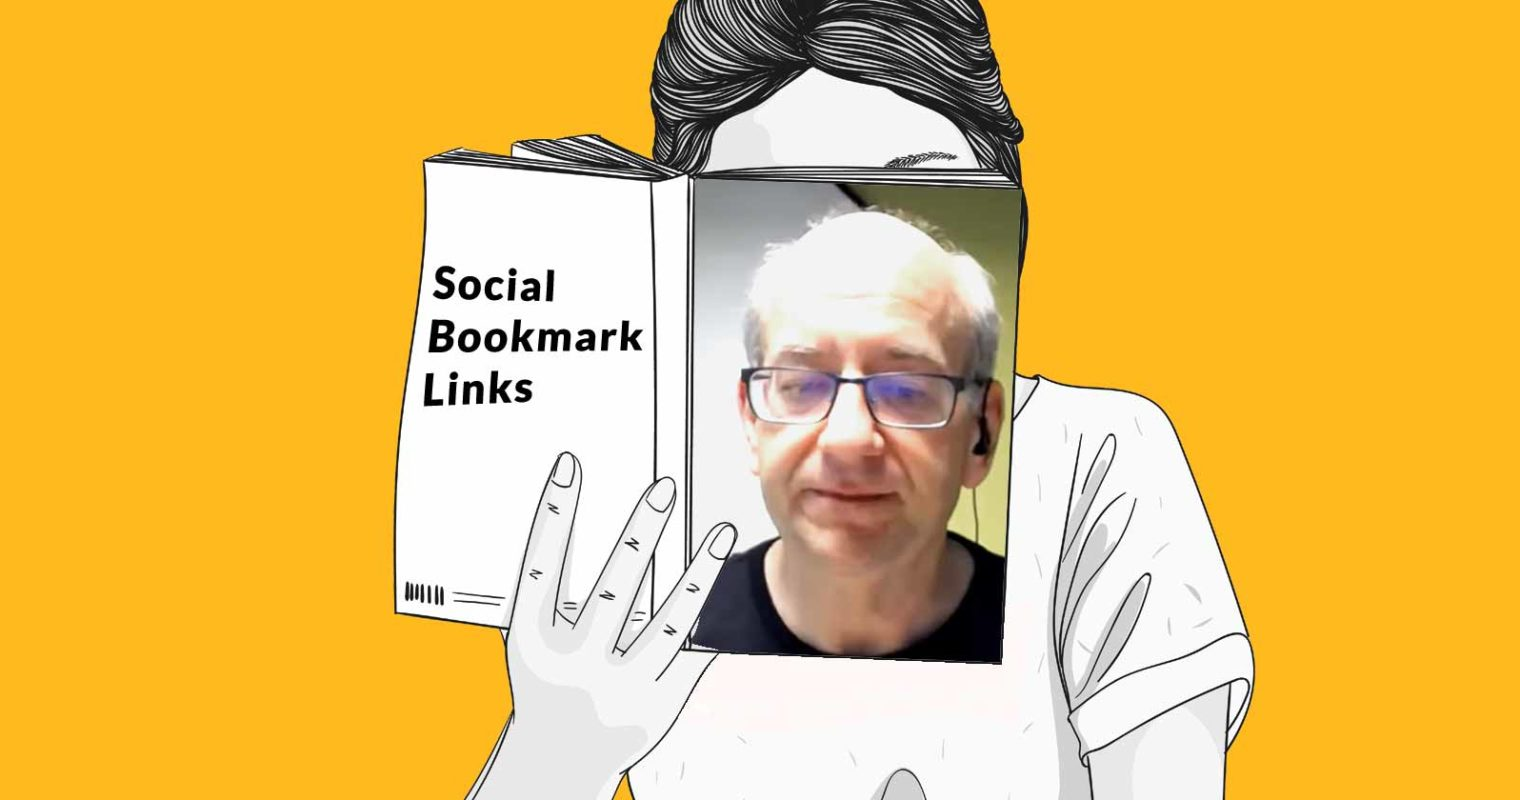 Google's John Mueller on Social Bookmarking for Links